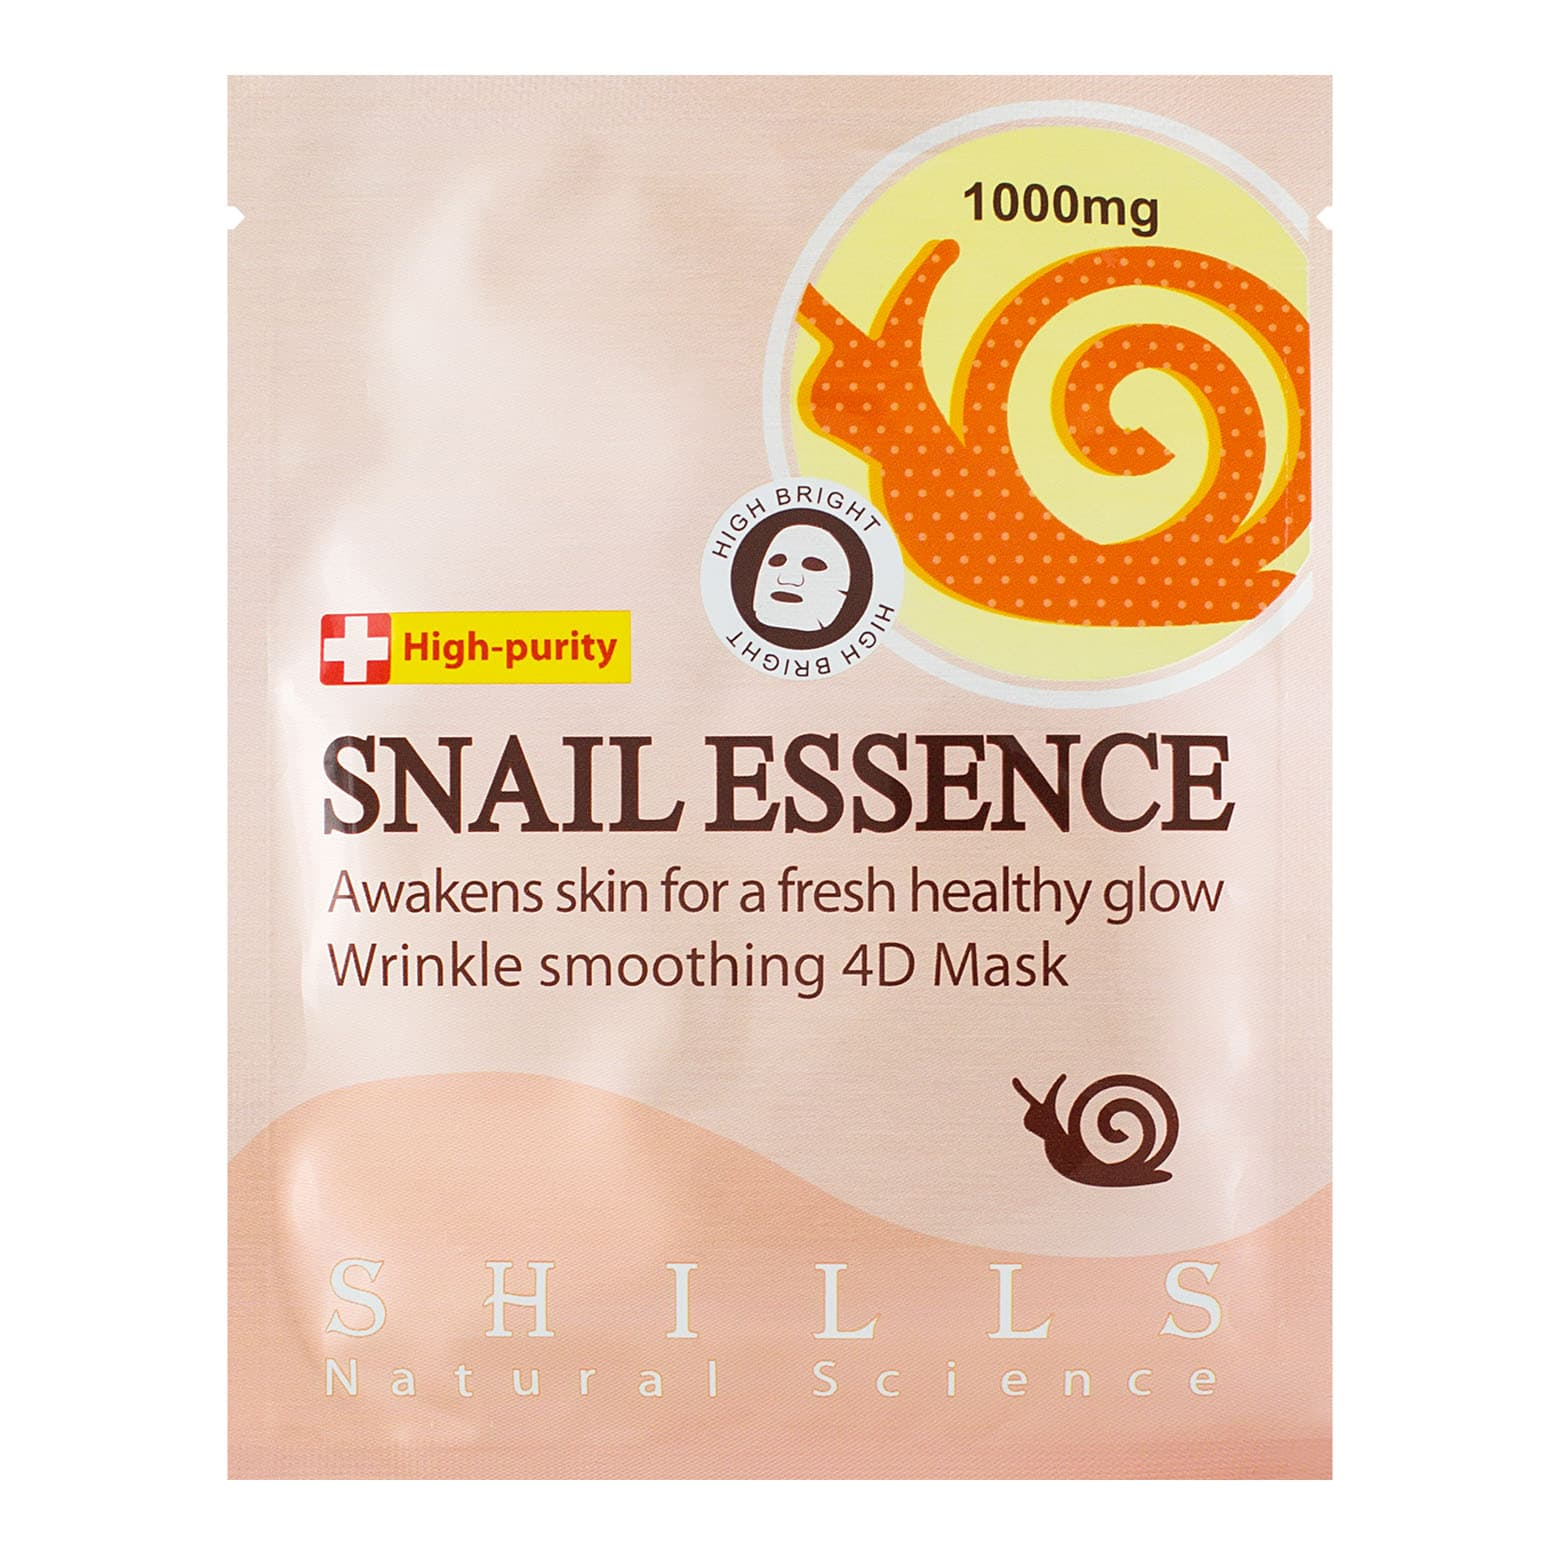 Snail Essence Wrinkle-Smoothing Mask